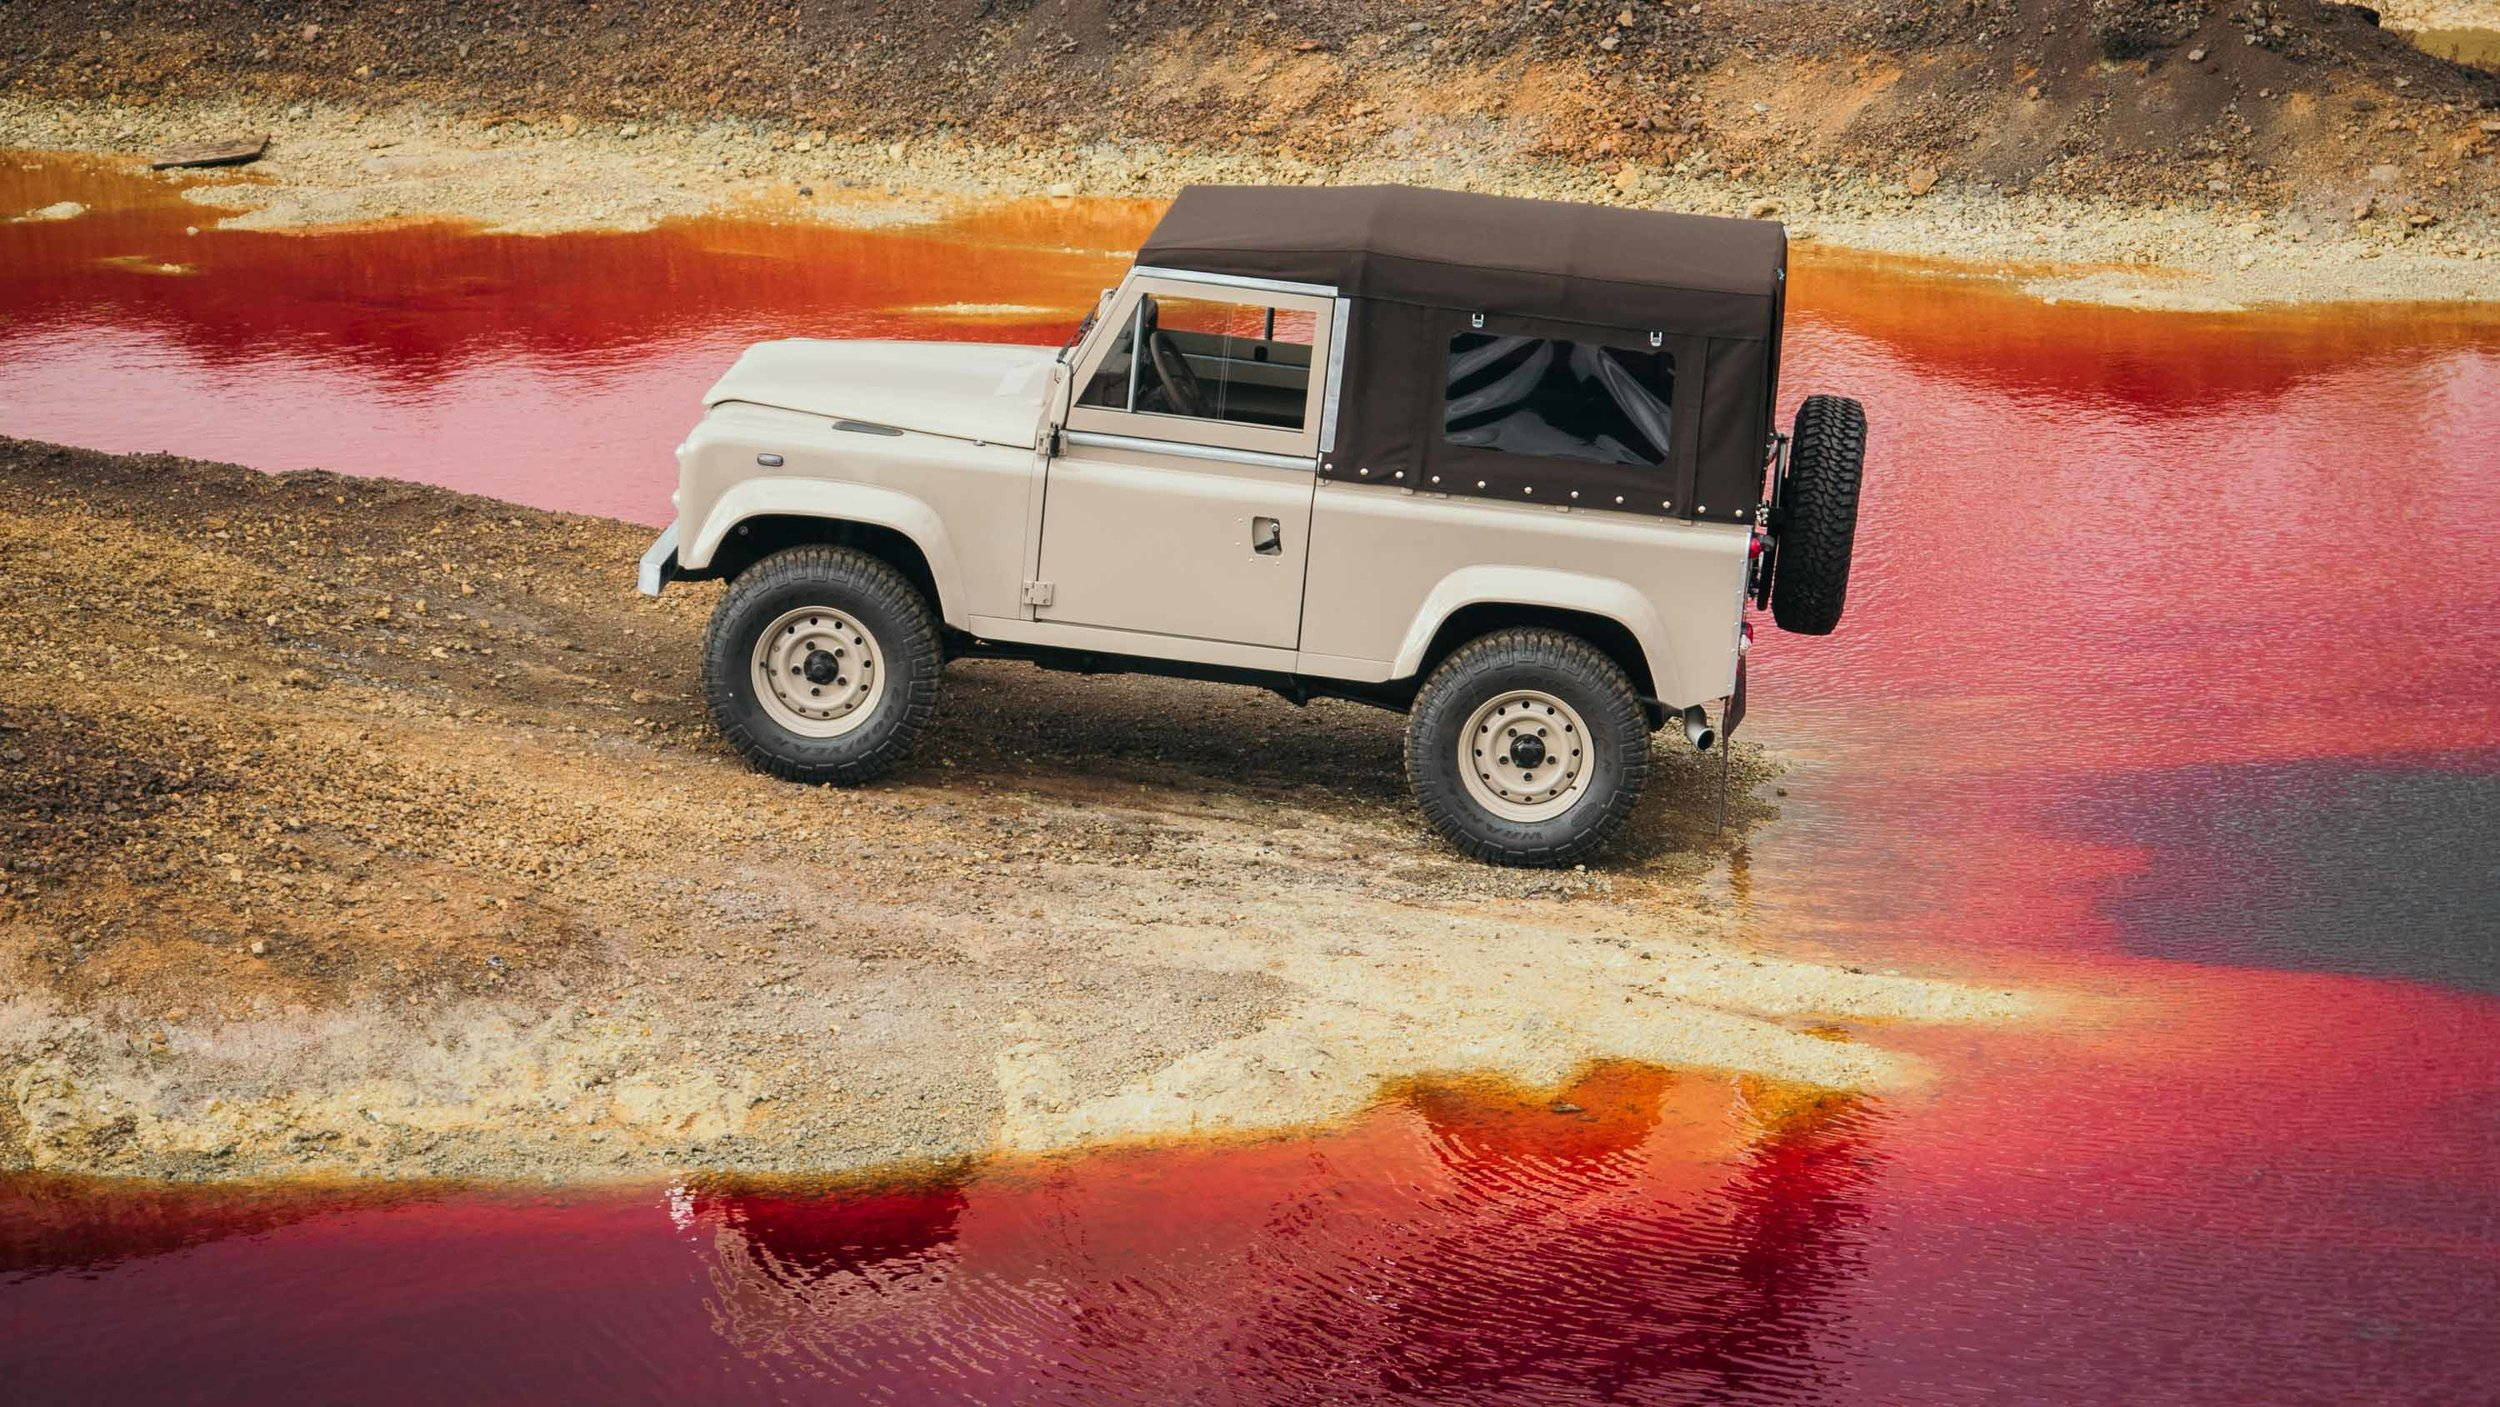 coolnvintage Land Rover Defender (78 of 81).jpg